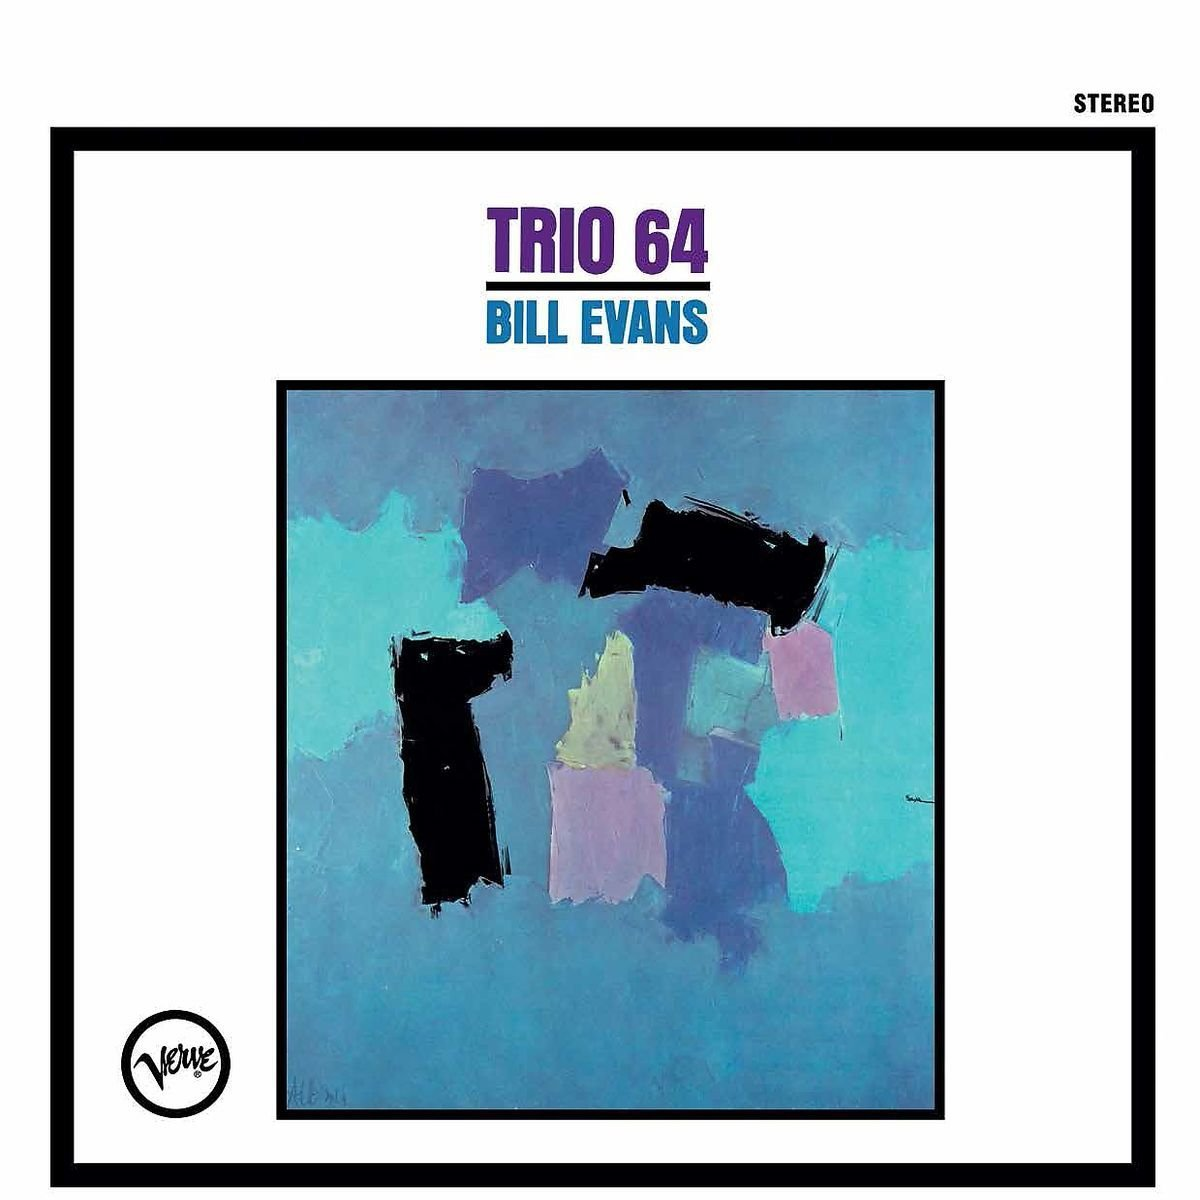 Bill Evans - Trio '64 [LP] - Amazon.com Music